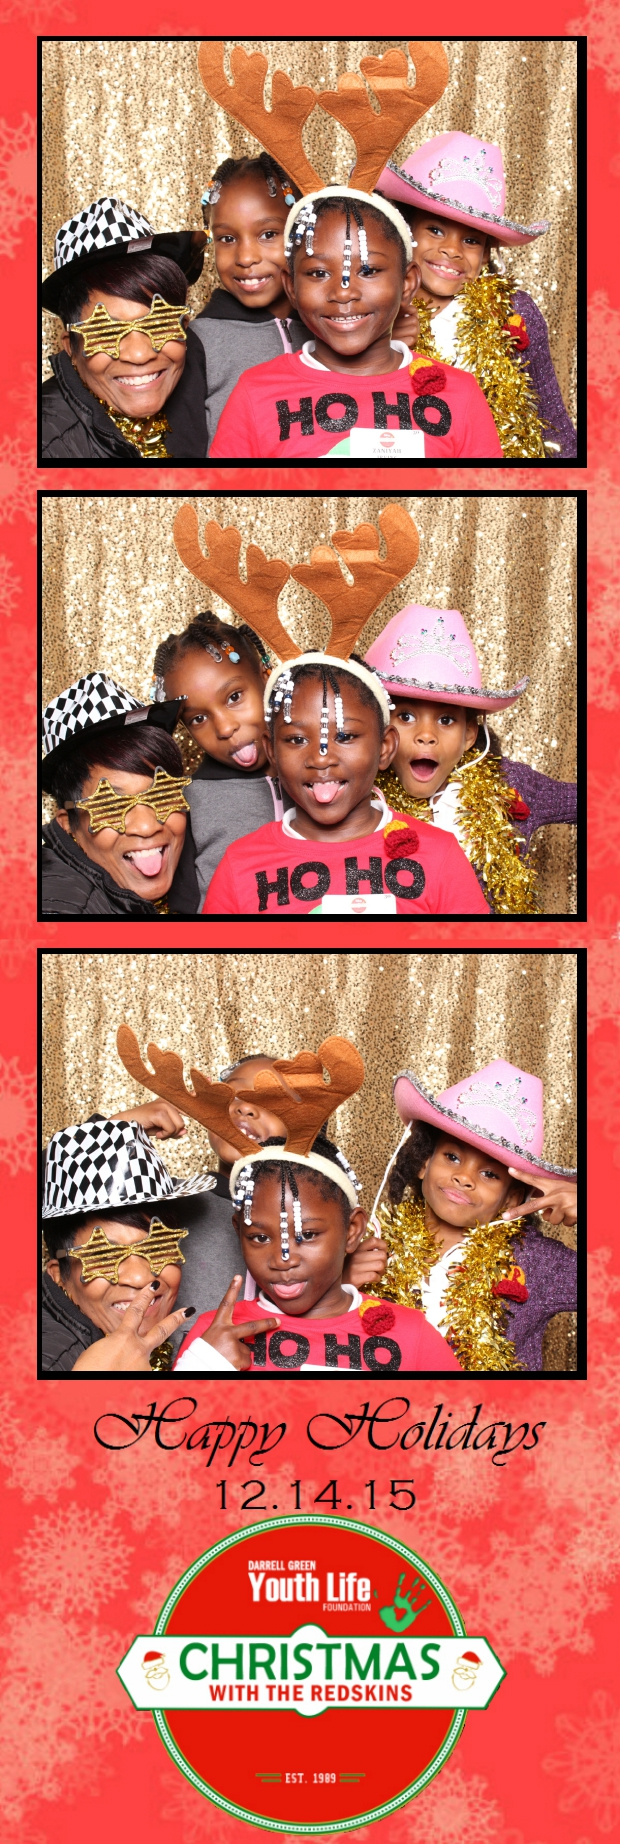 Guest House Events Photo Booth DGYLF Strips (41).jpg